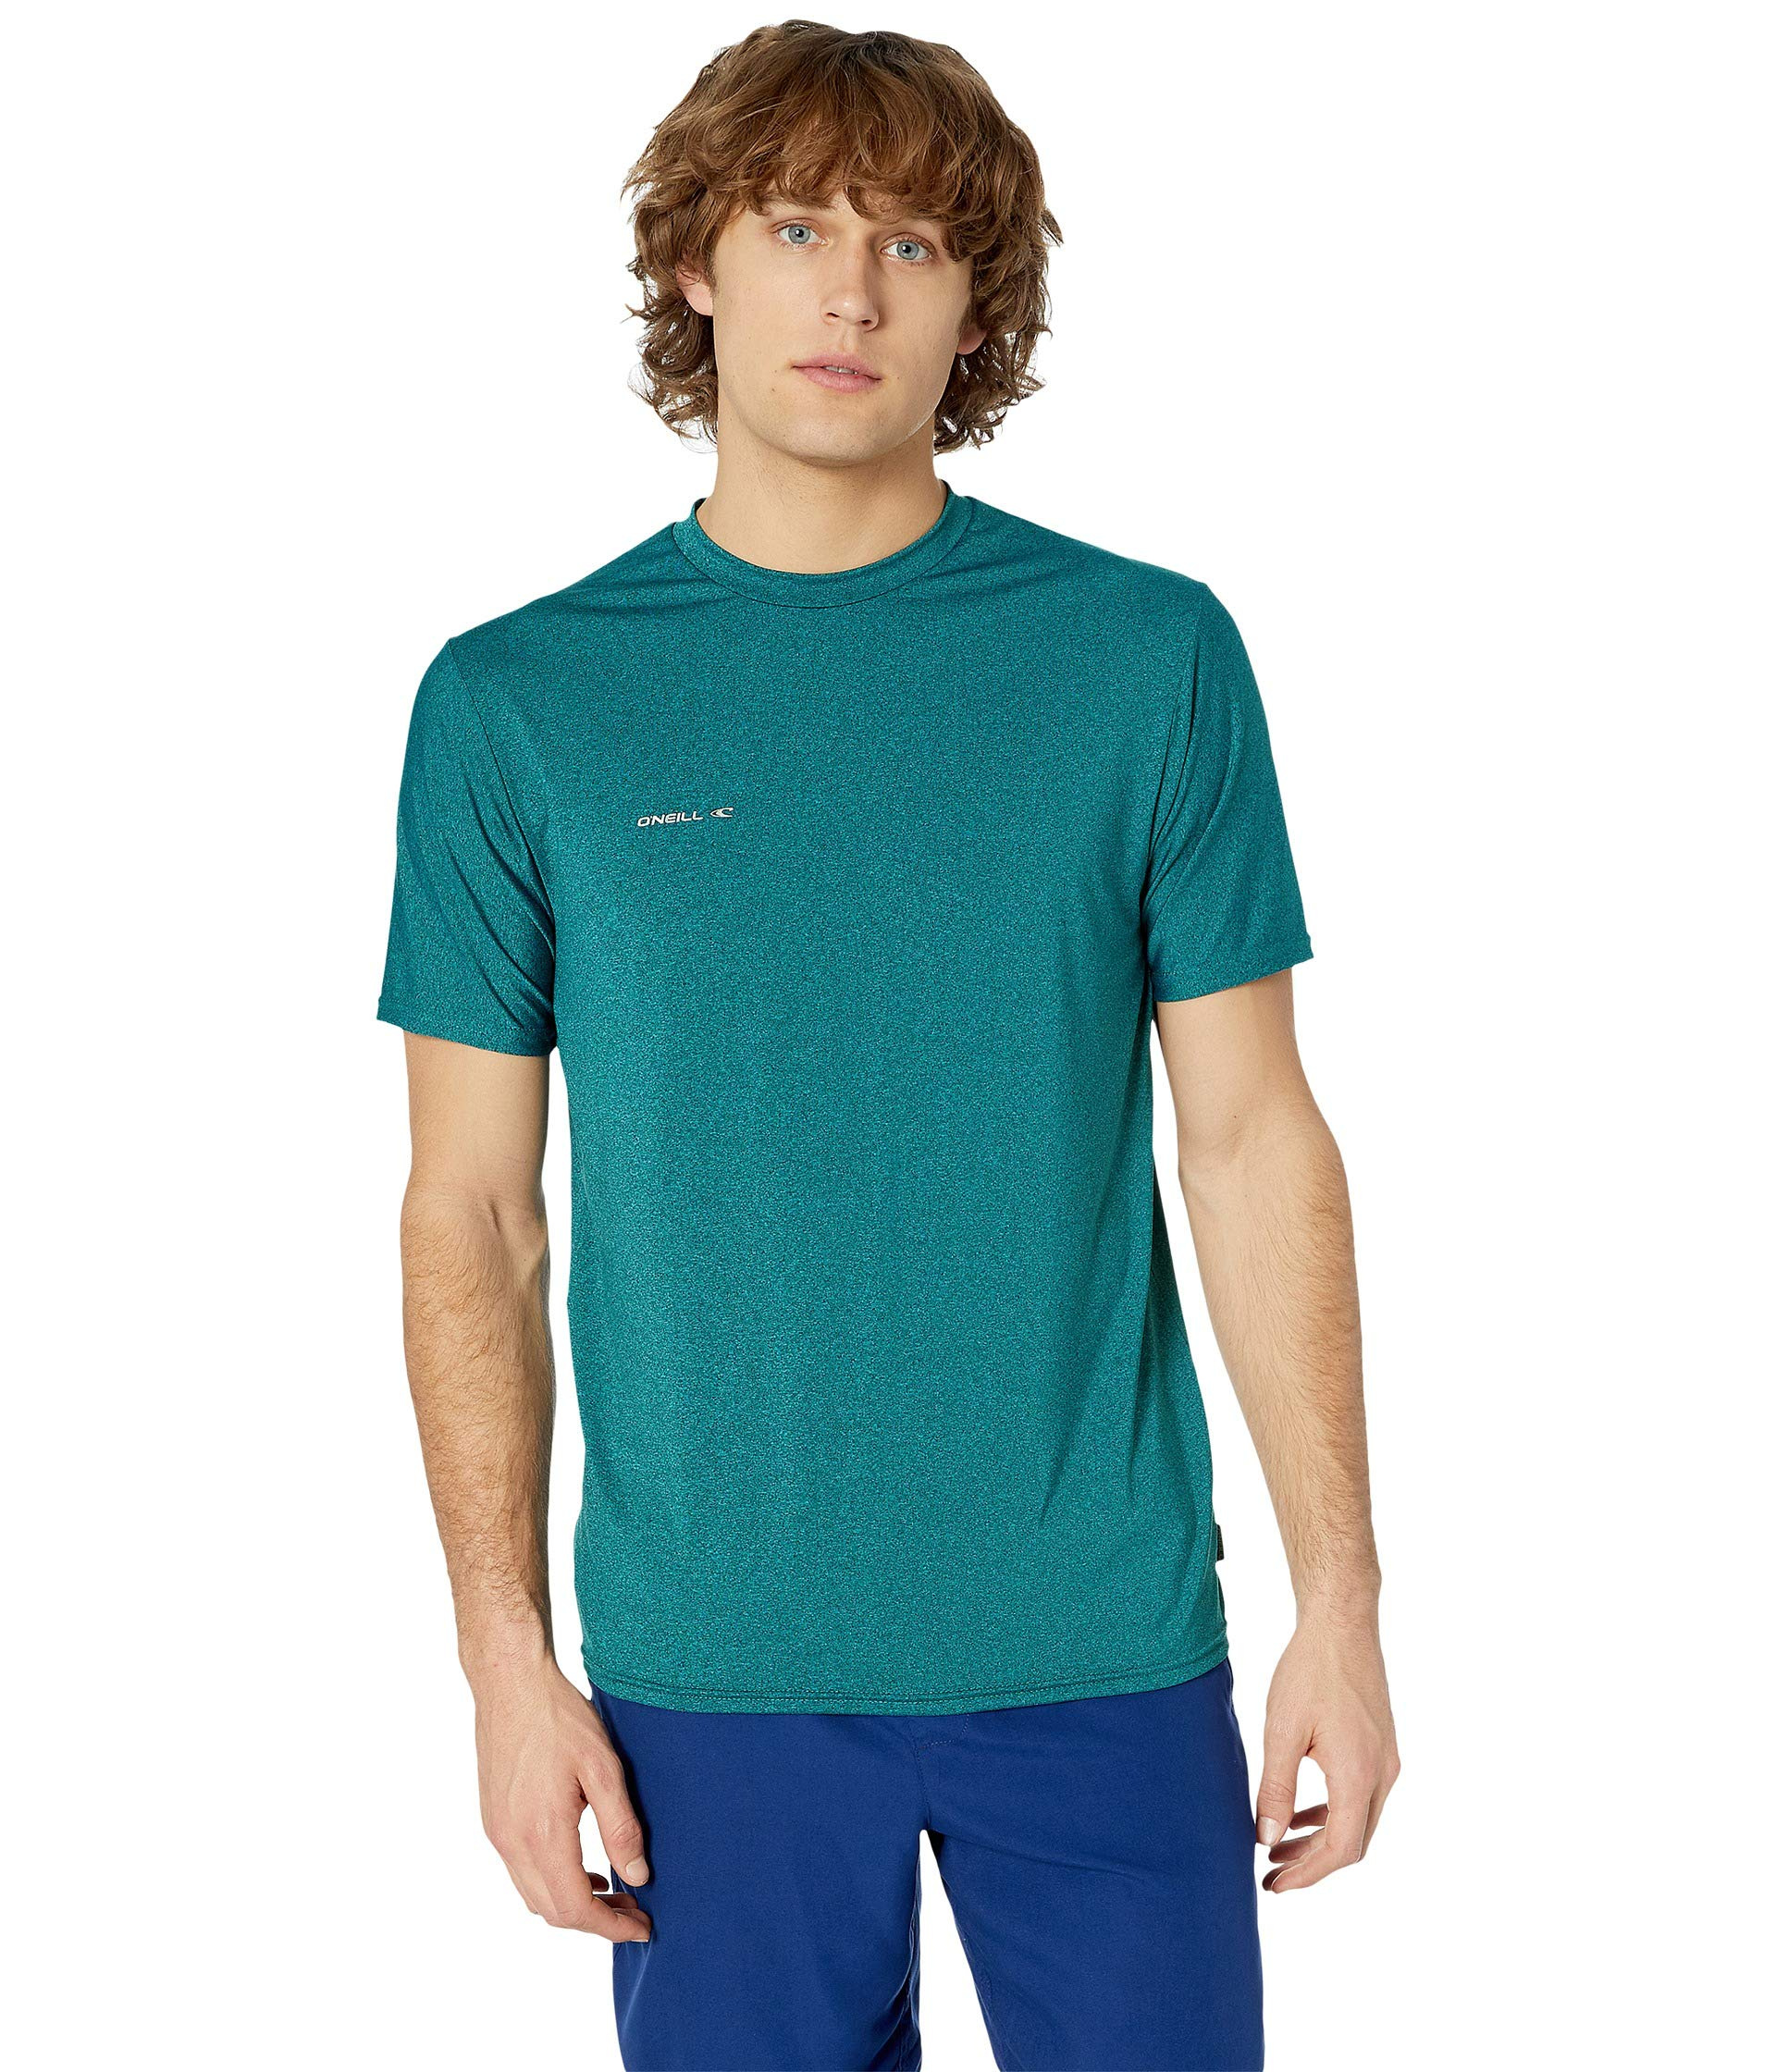 O'Neill Wetsuits Men's Hybrid UPF 50+ Short Sleeve Sun Shirt, Teal, Small by O'Neill Wetsuits (Image #1)